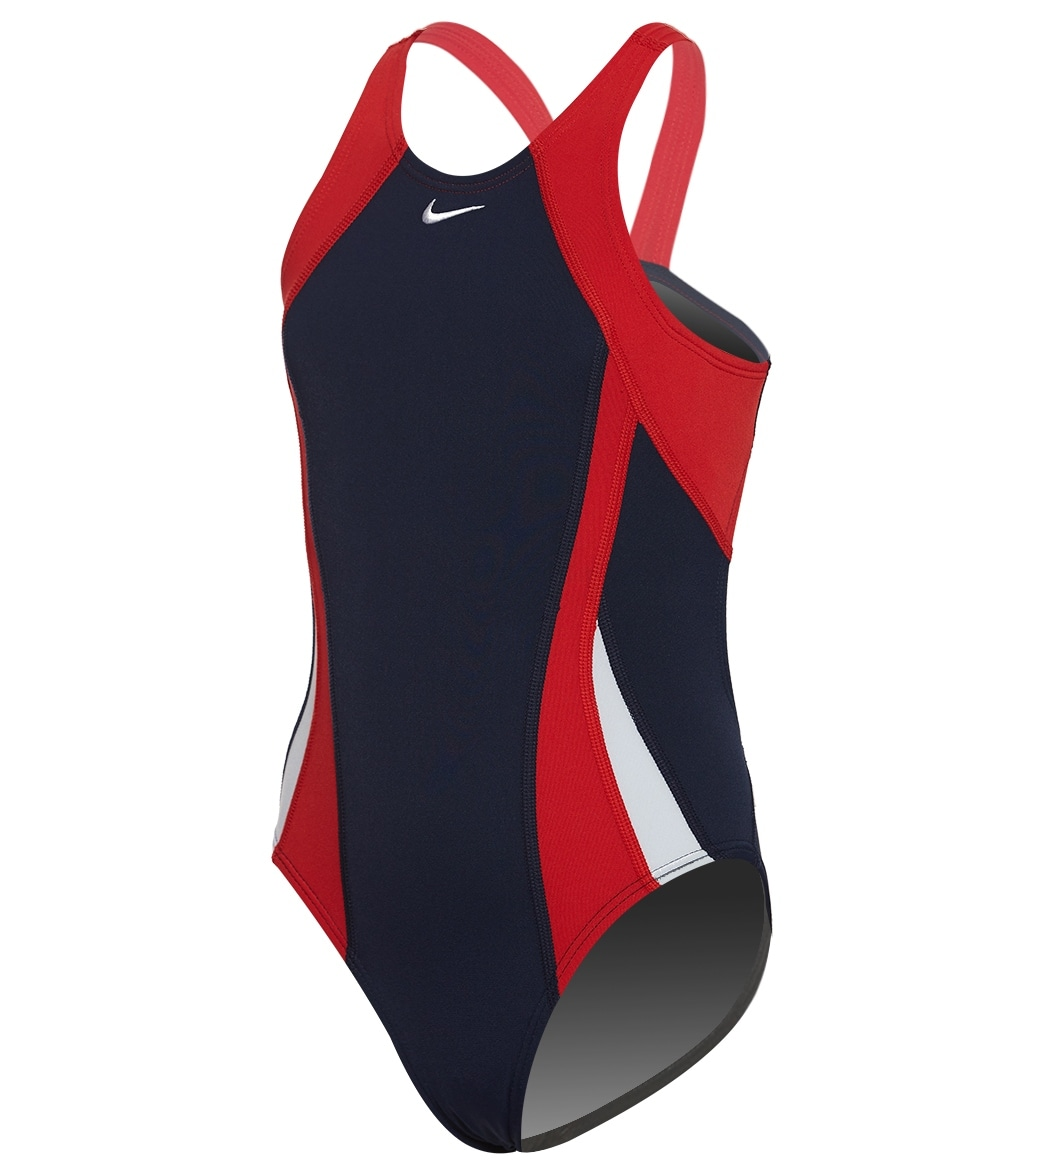 68313a3225c Nike Girls  Color Surge Fastback One Piece Swimsuit at SwimOutlet.com - Free  Shipping